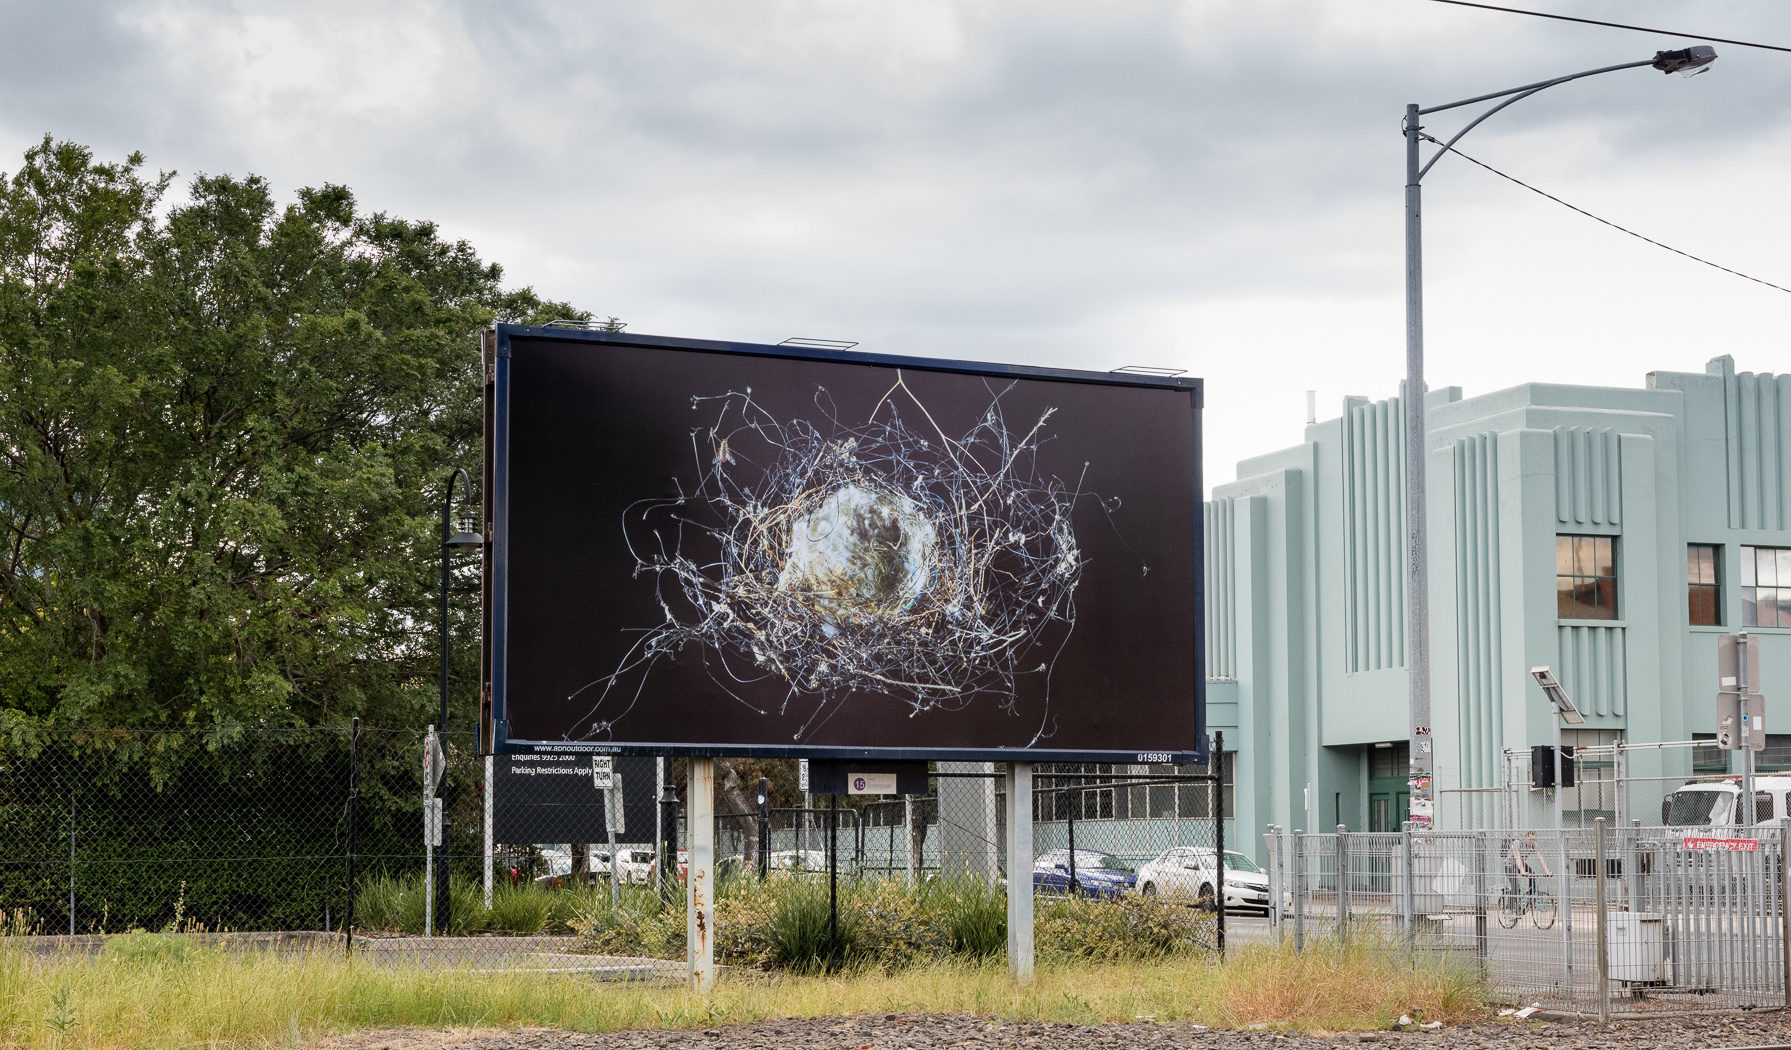 Found bird's nest of plastic netting and other unnatural fibres ,  2016   Detail on billboard, MoreArt festival, 2016. Dawson St, Brunswick, Melbourne. Displayed for 6 months from October 2016-May 2017